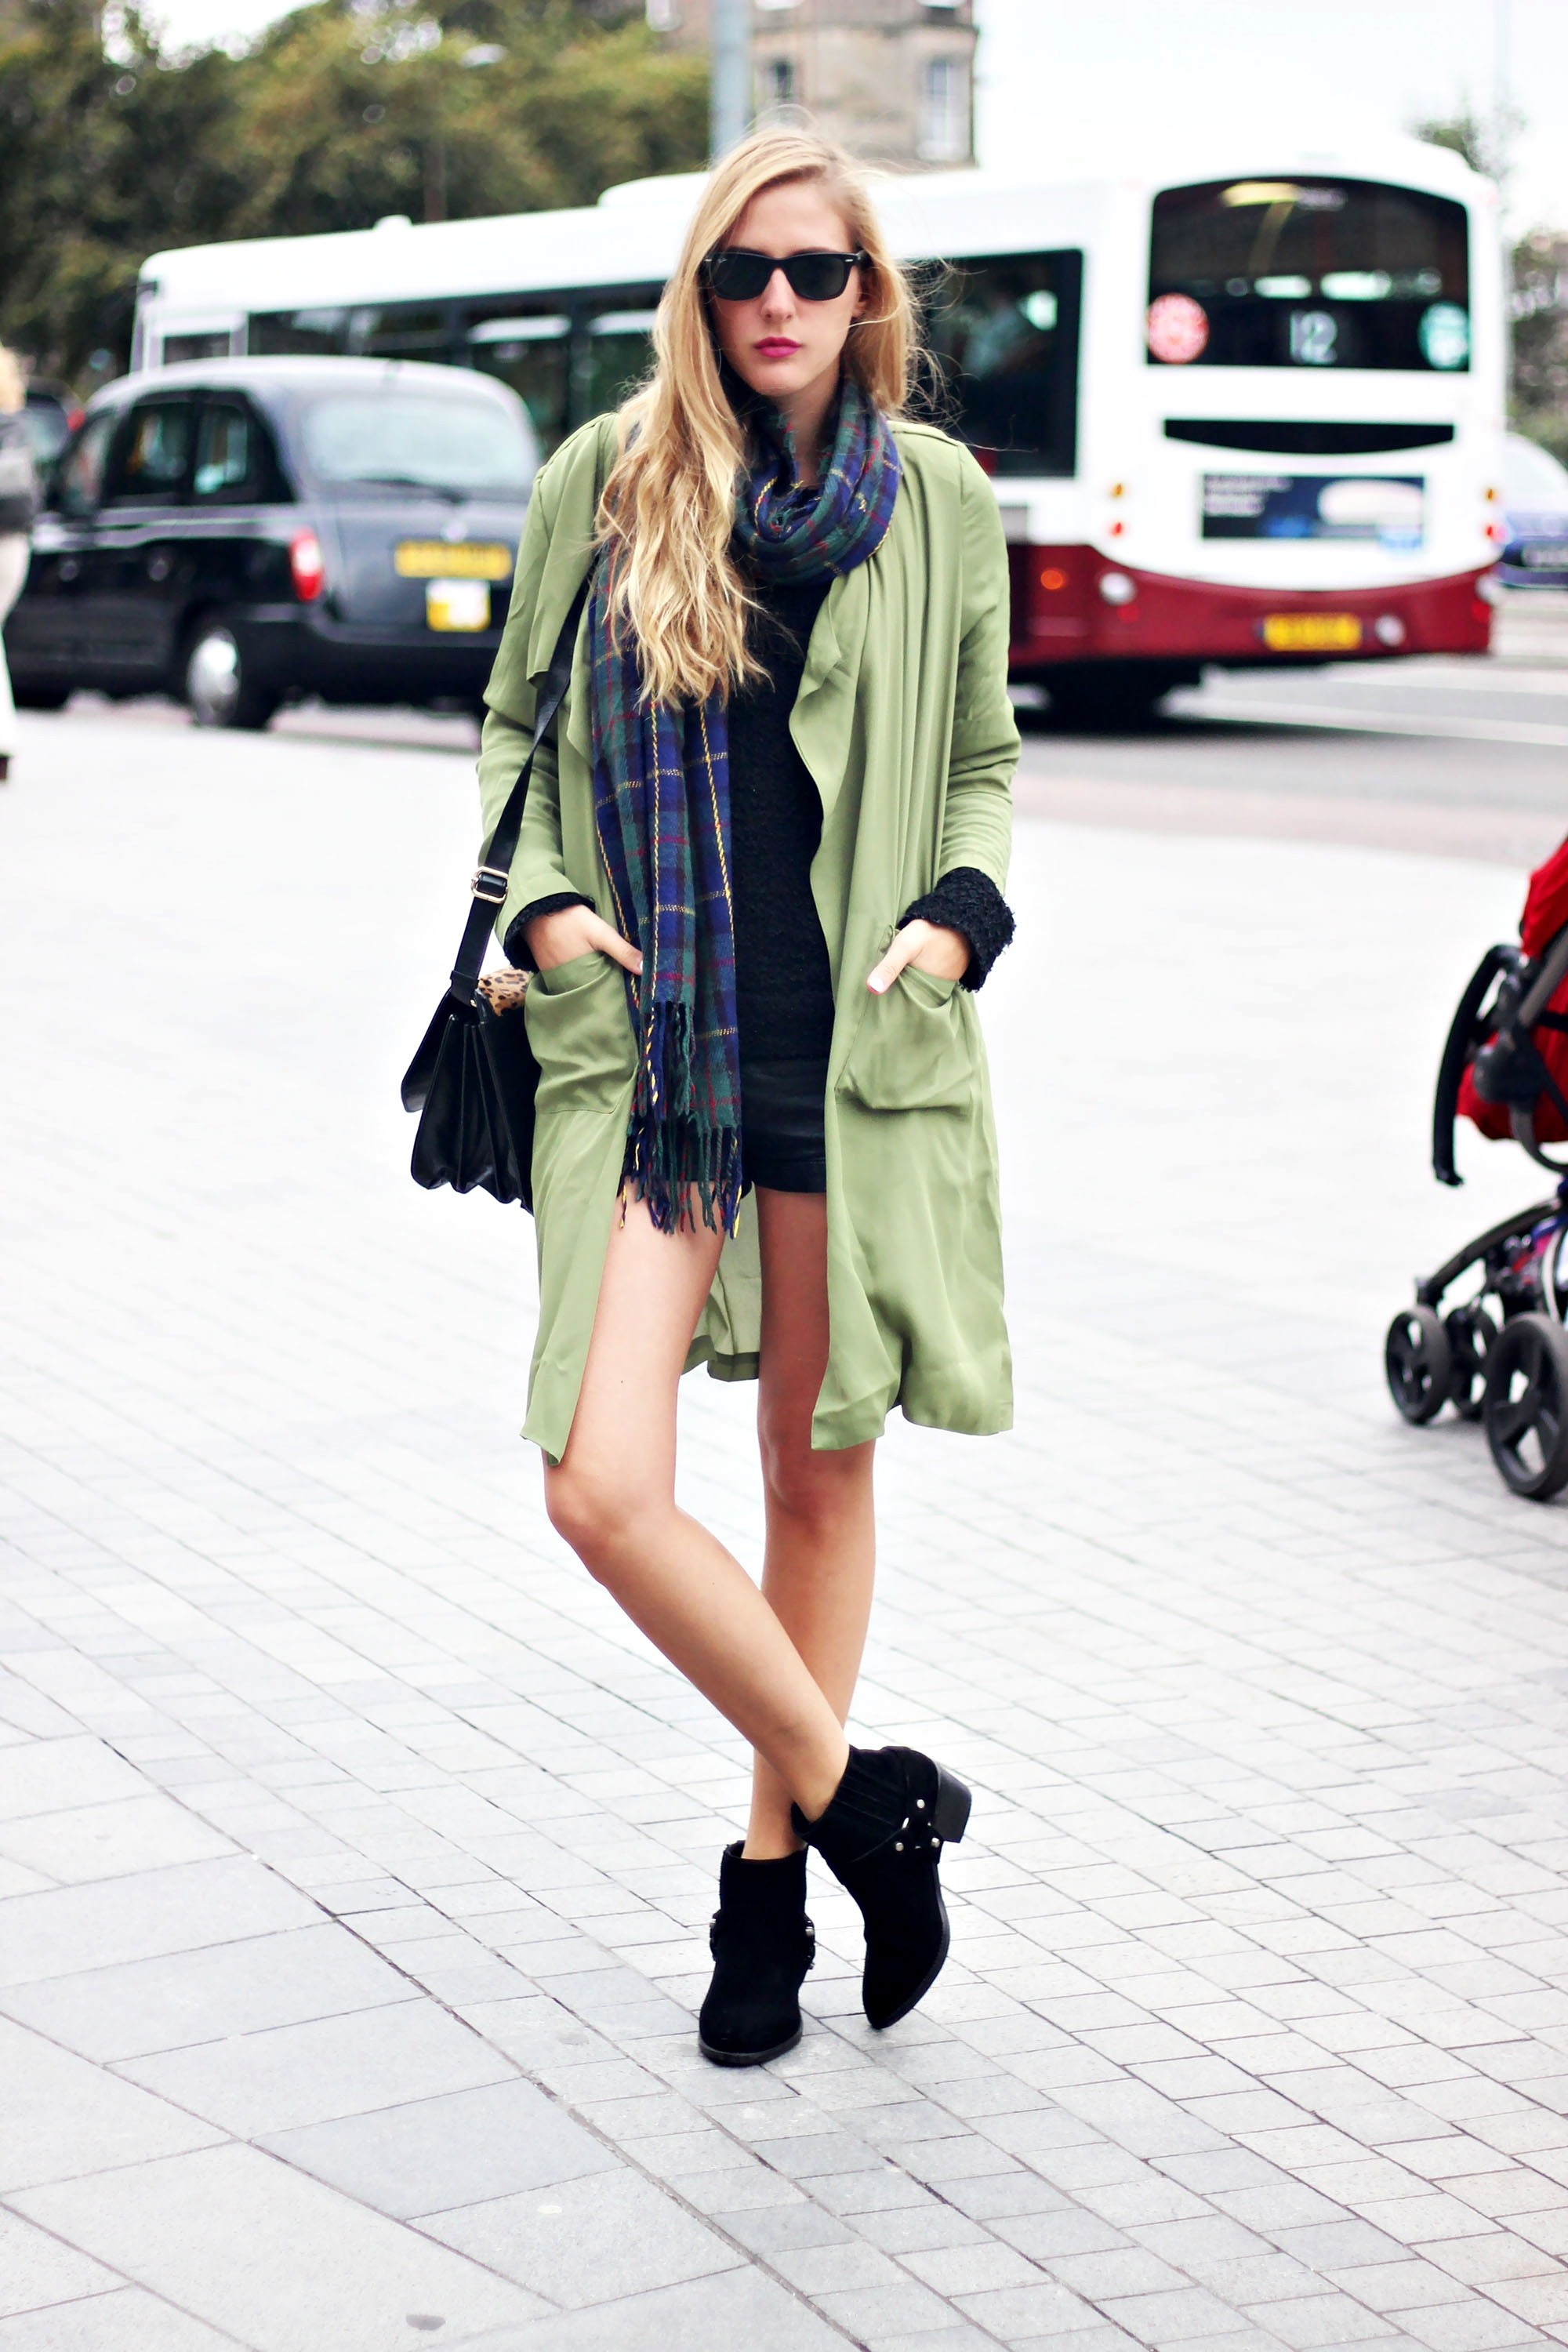 Stylish Outfit Ideas With Ankle Boots